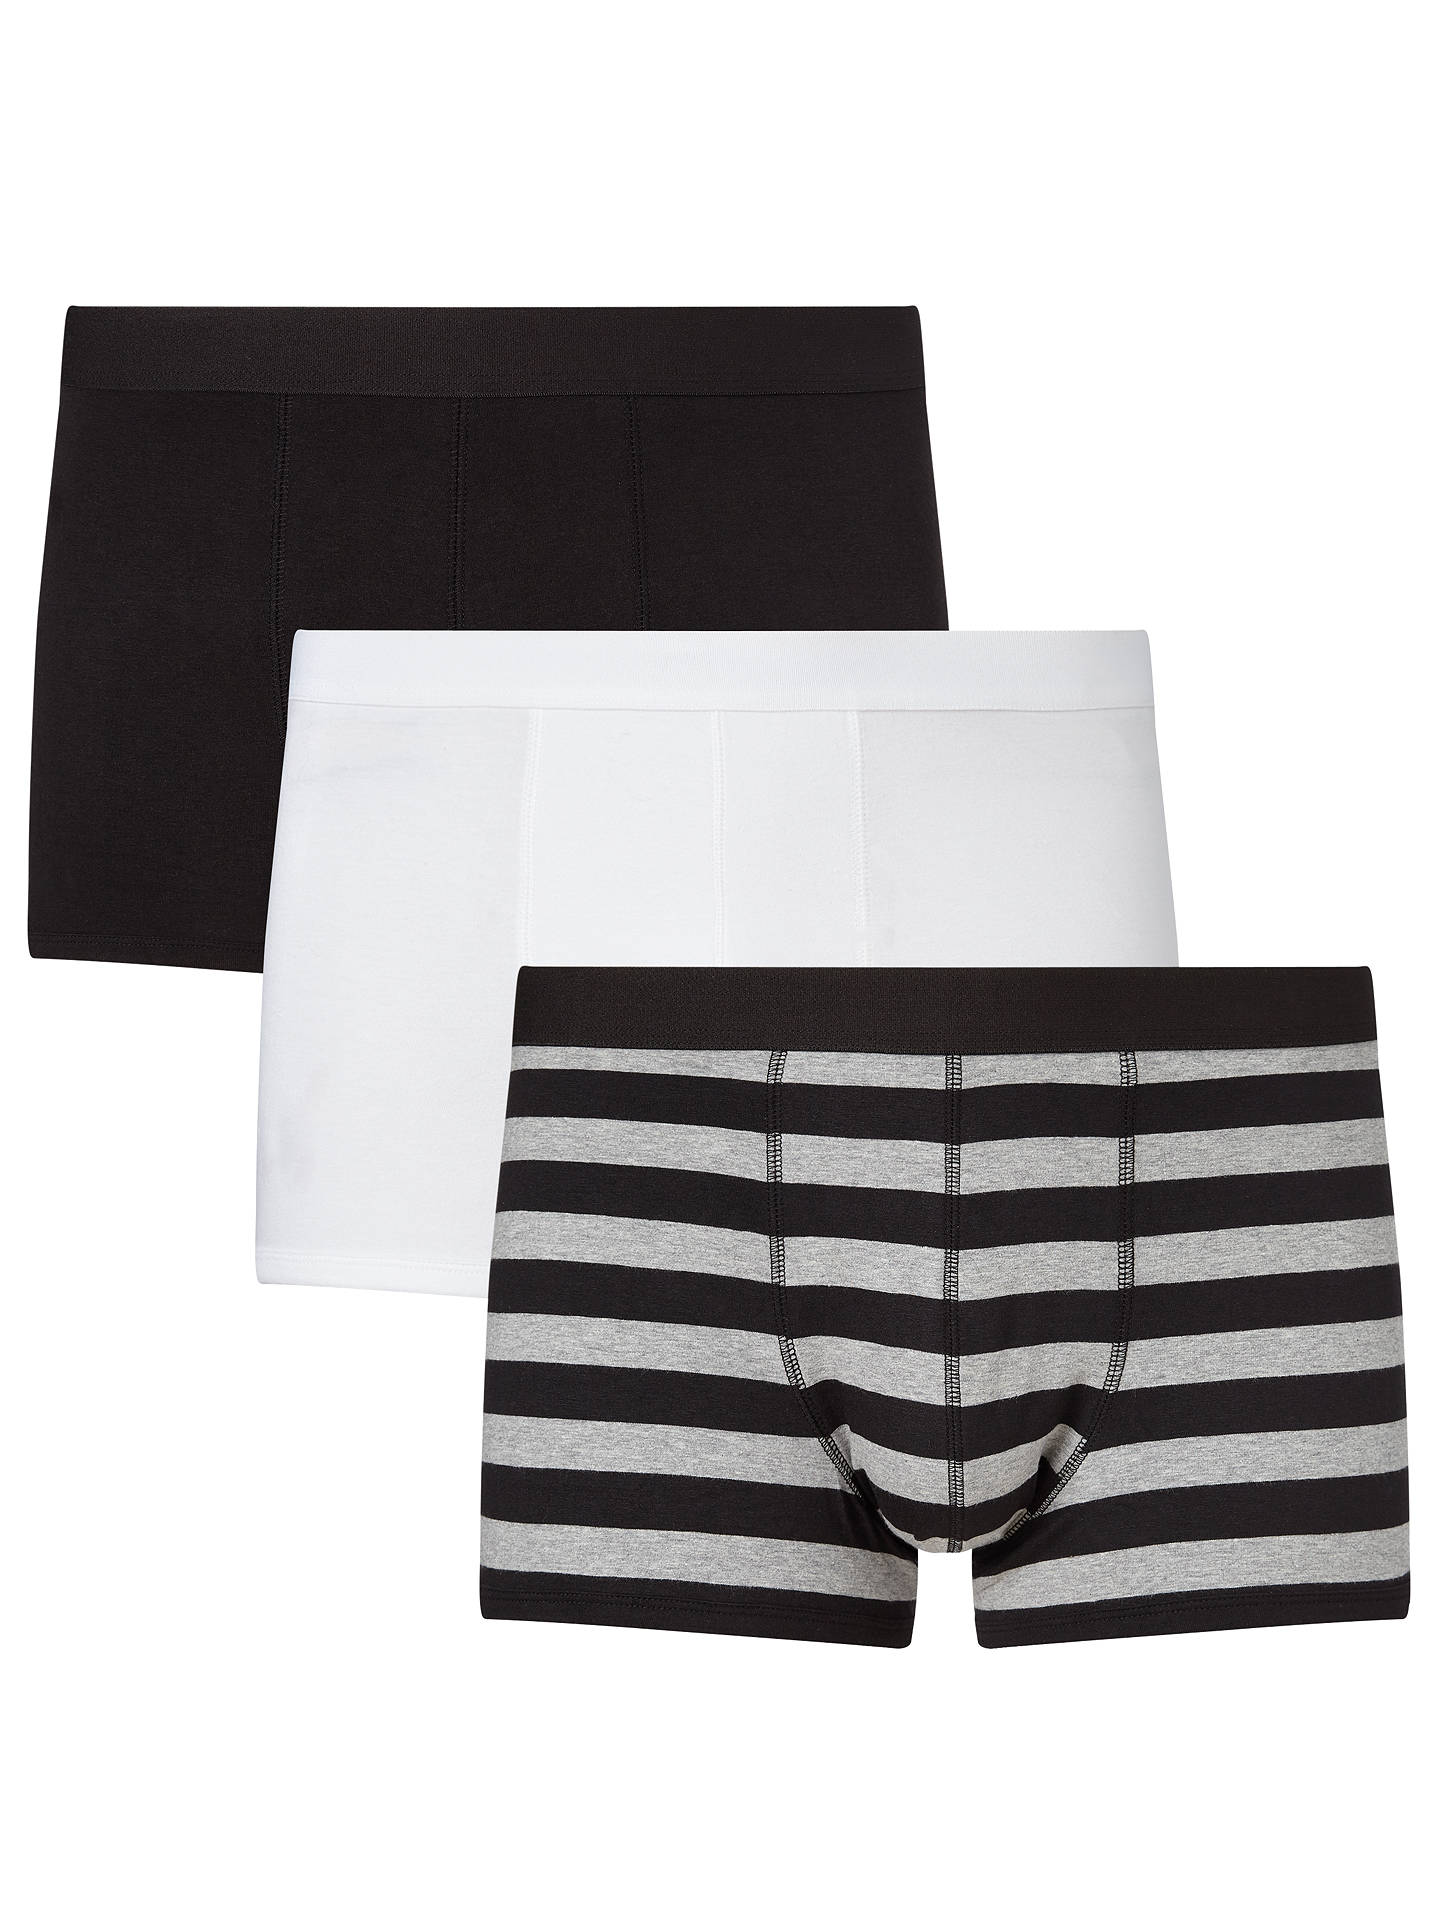 Buy John Lewis & Partners Organic Cotton Hipster Trunks, Pack of 3, Black/White, S Online at johnlewis.com